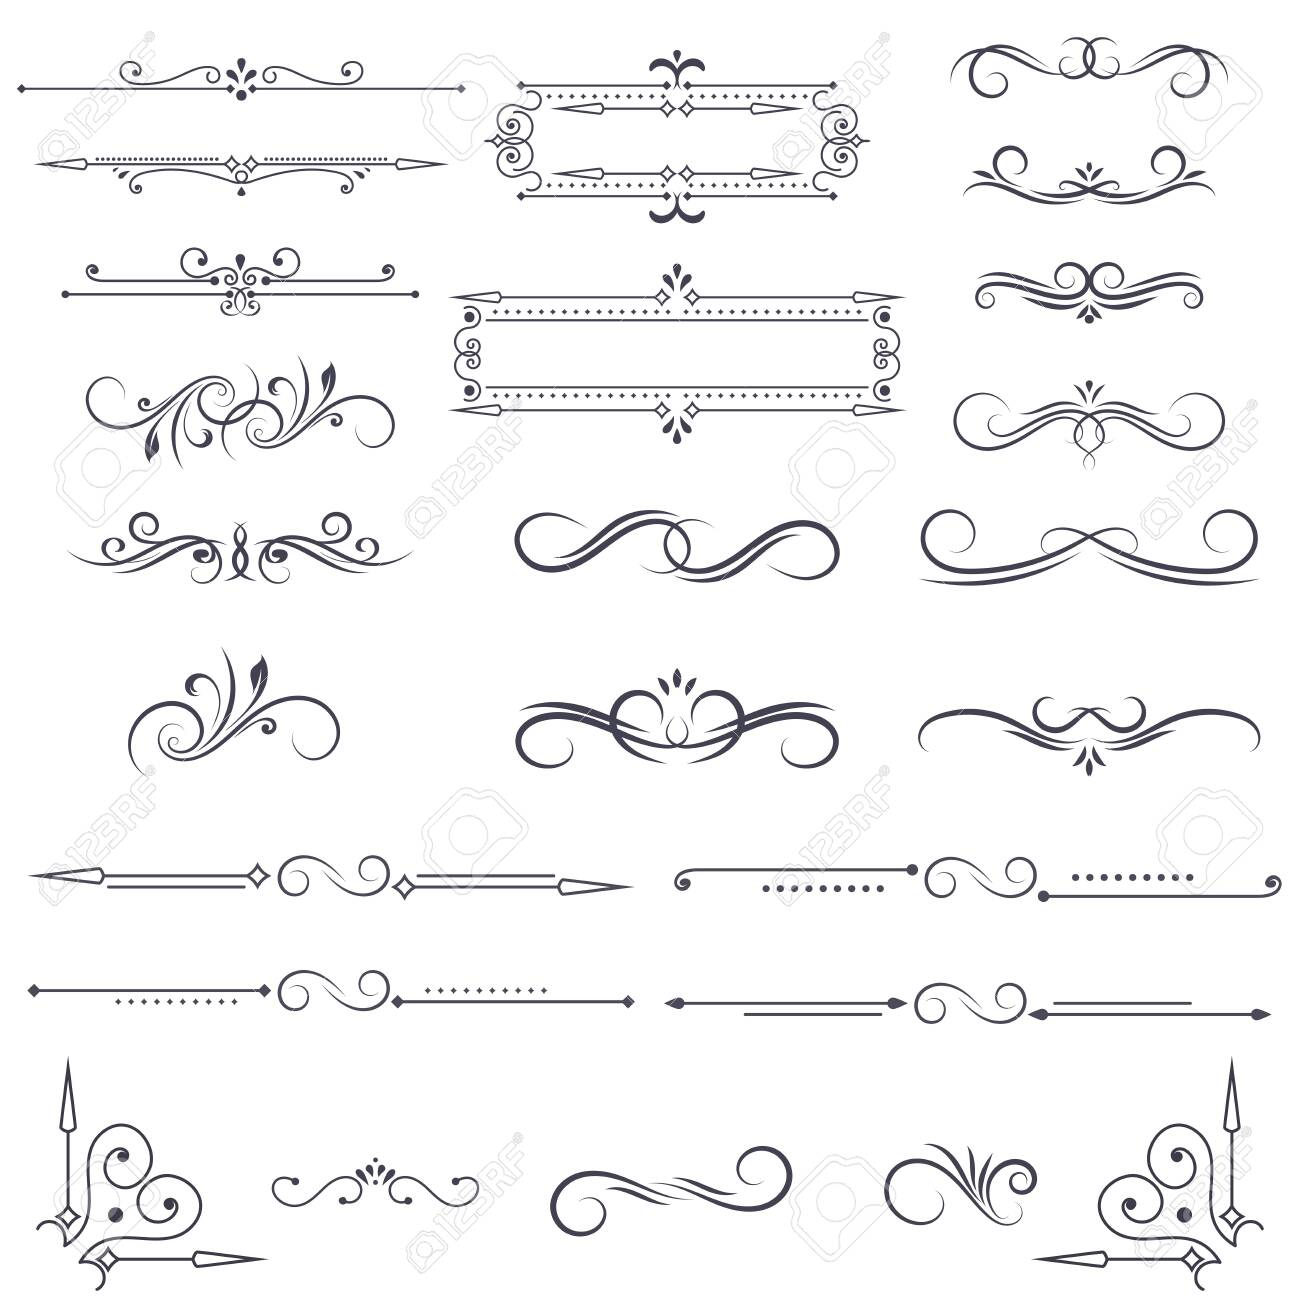 Vintage ornamental dividers and frames. Black floral decorations isolated on white background. Vector illustration - 143325709